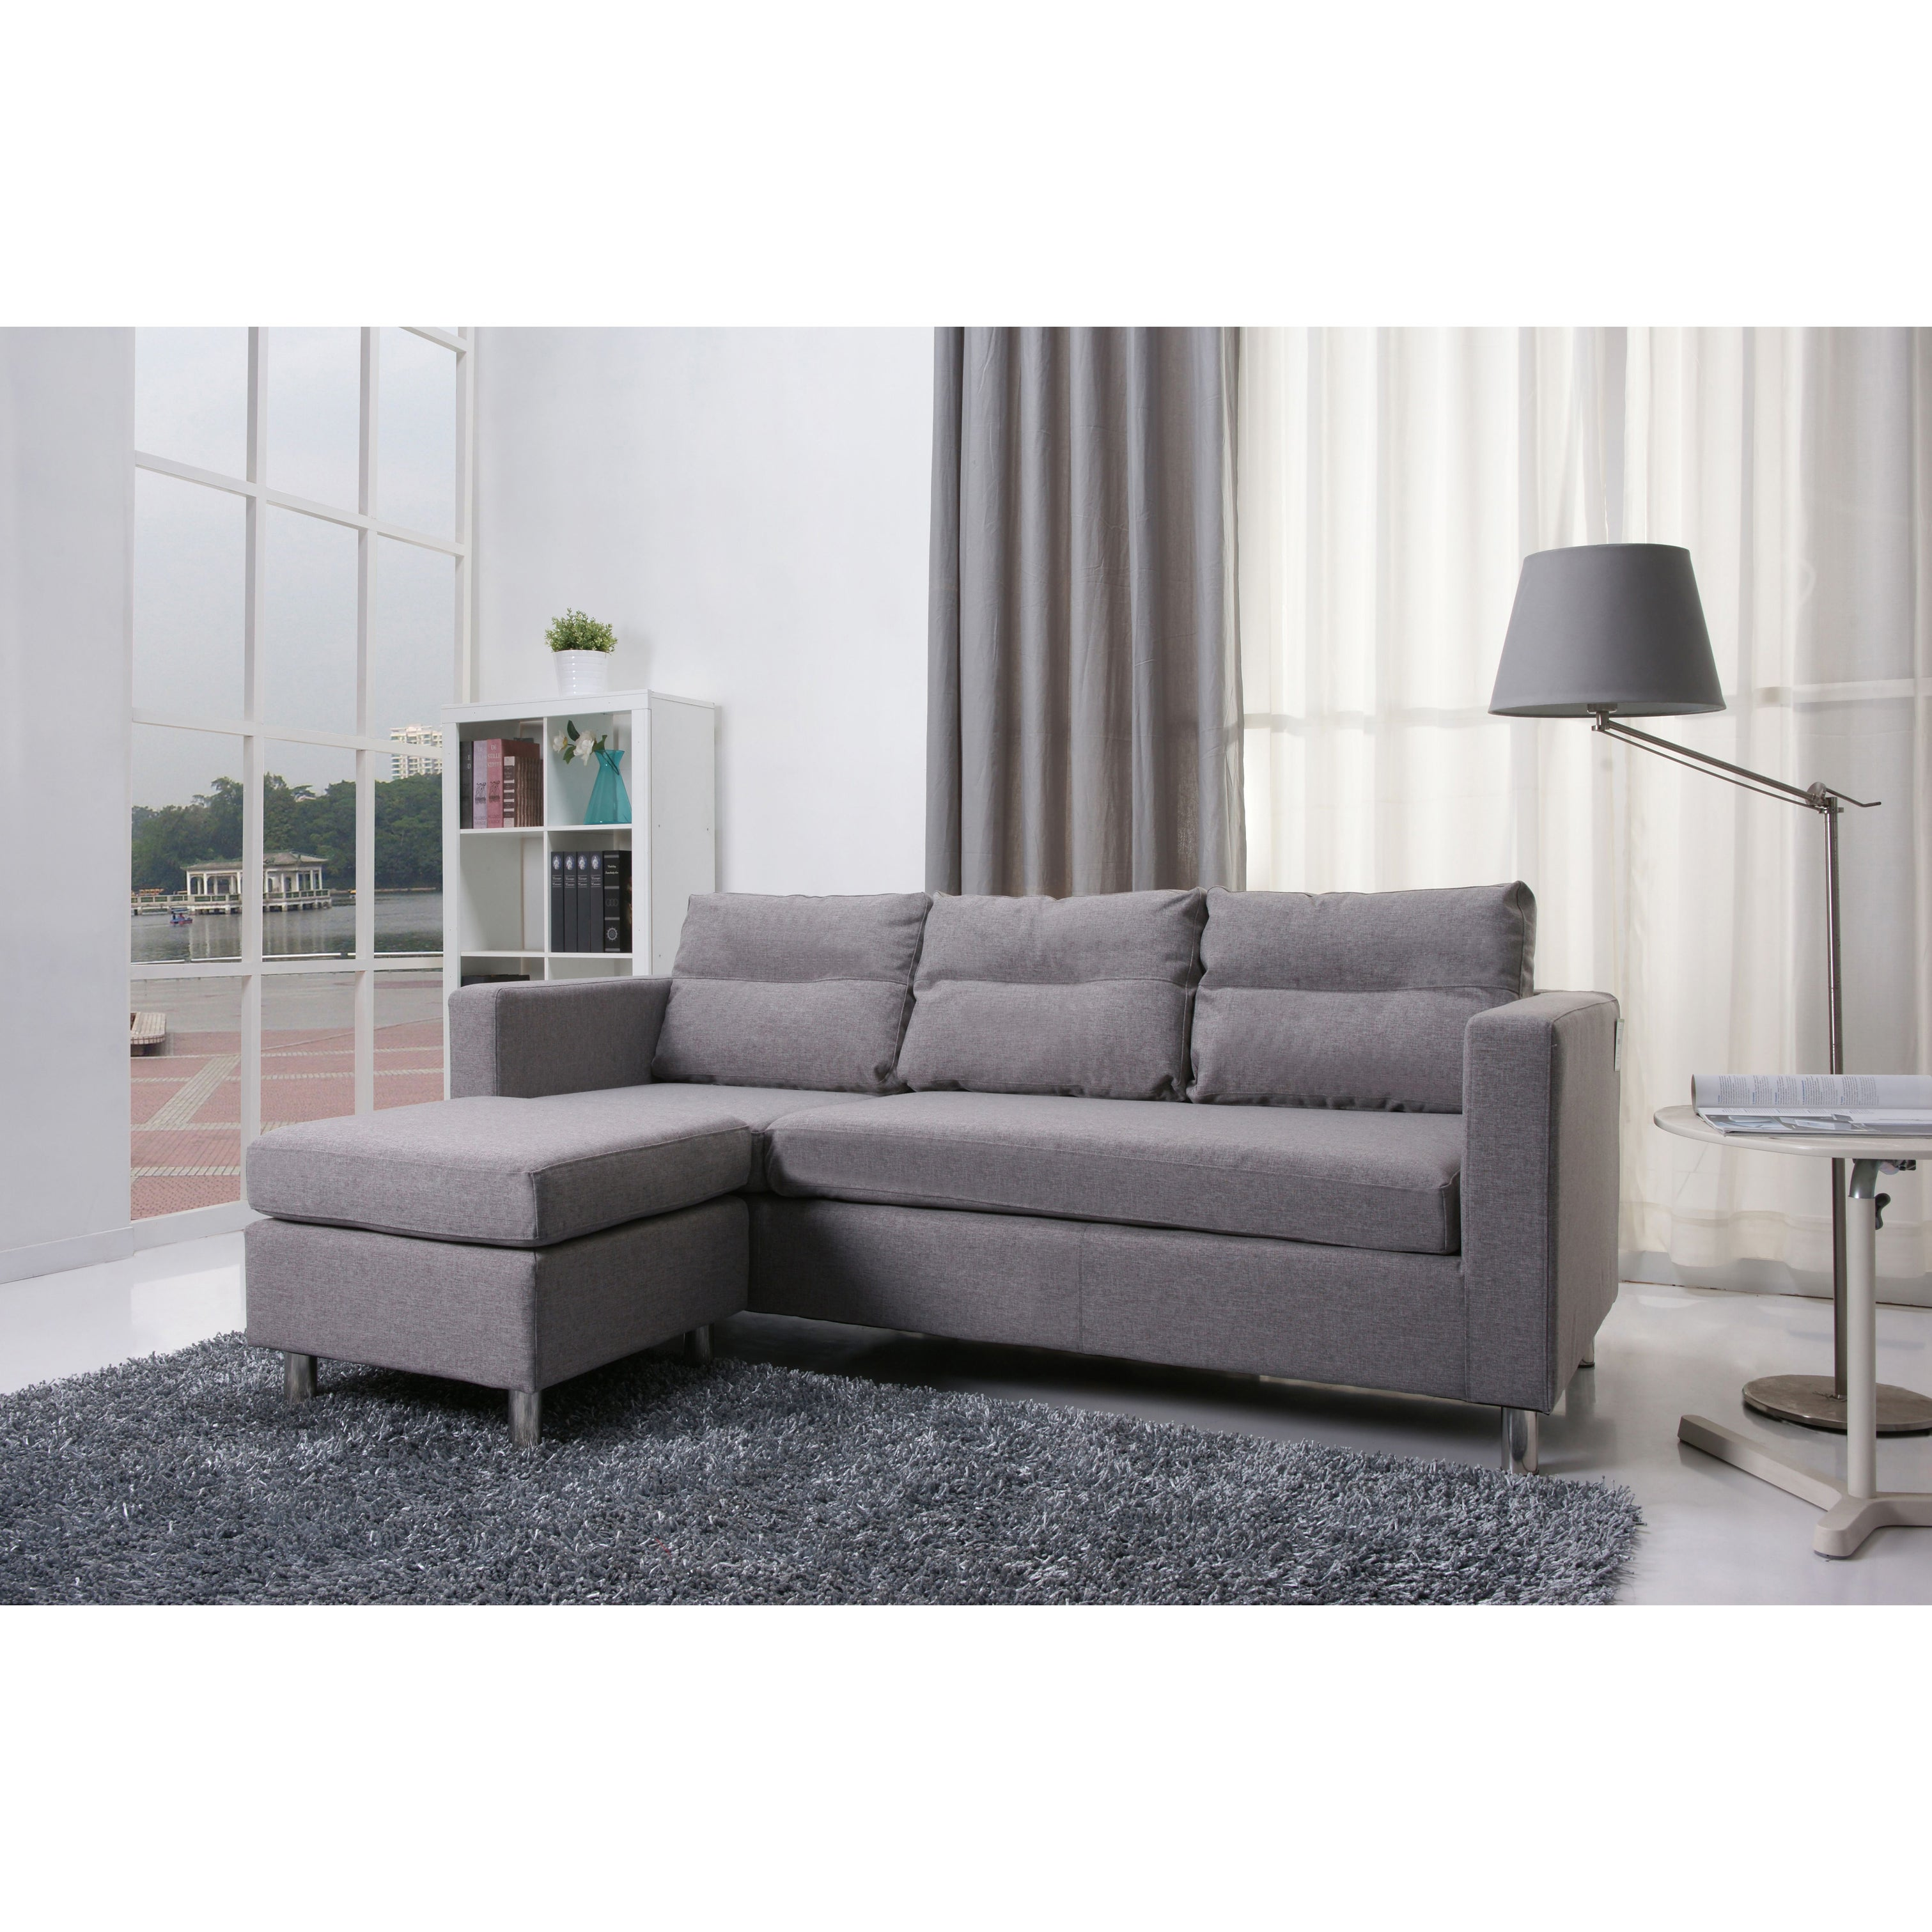 Cool Detroit Ash Convertible Sectional Sofa And Ottoman Dailytribune Chair Design For Home Dailytribuneorg